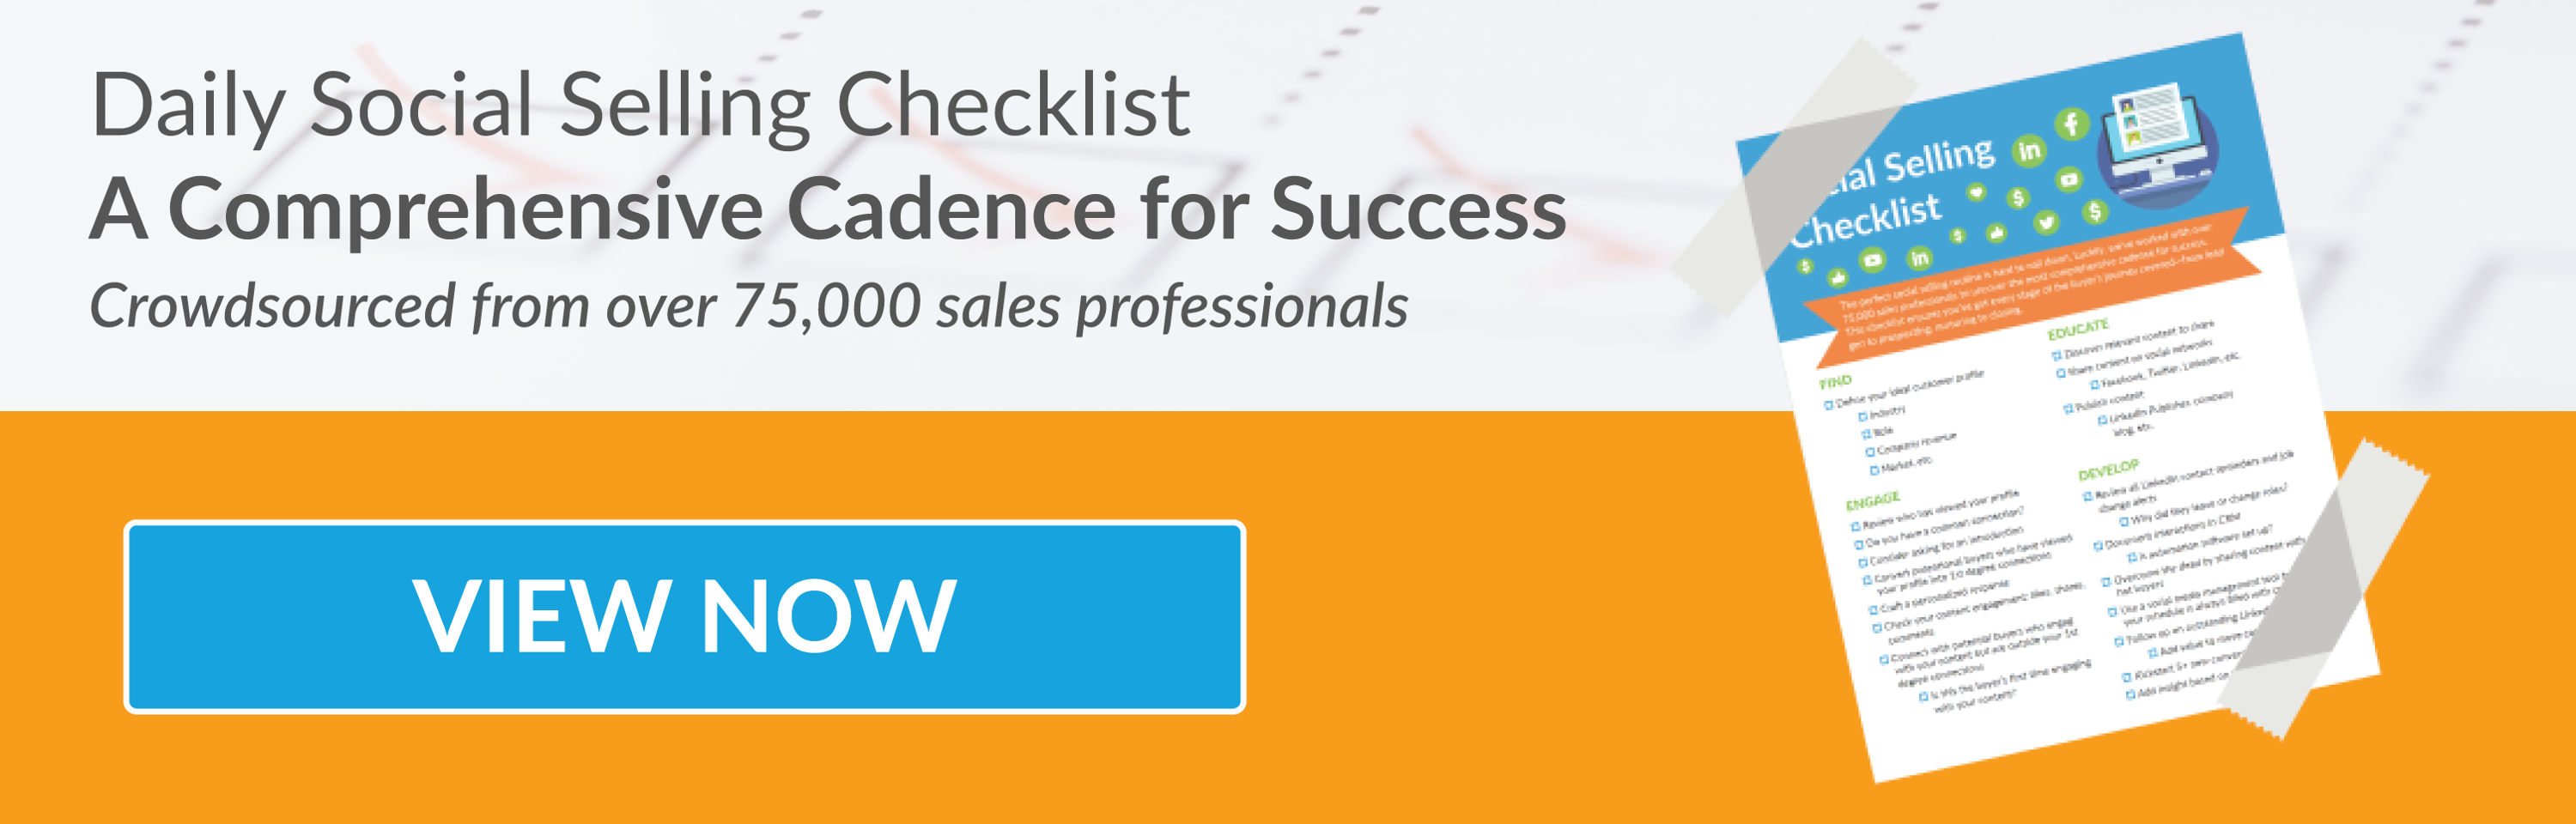 Daily Social Selling Checklist